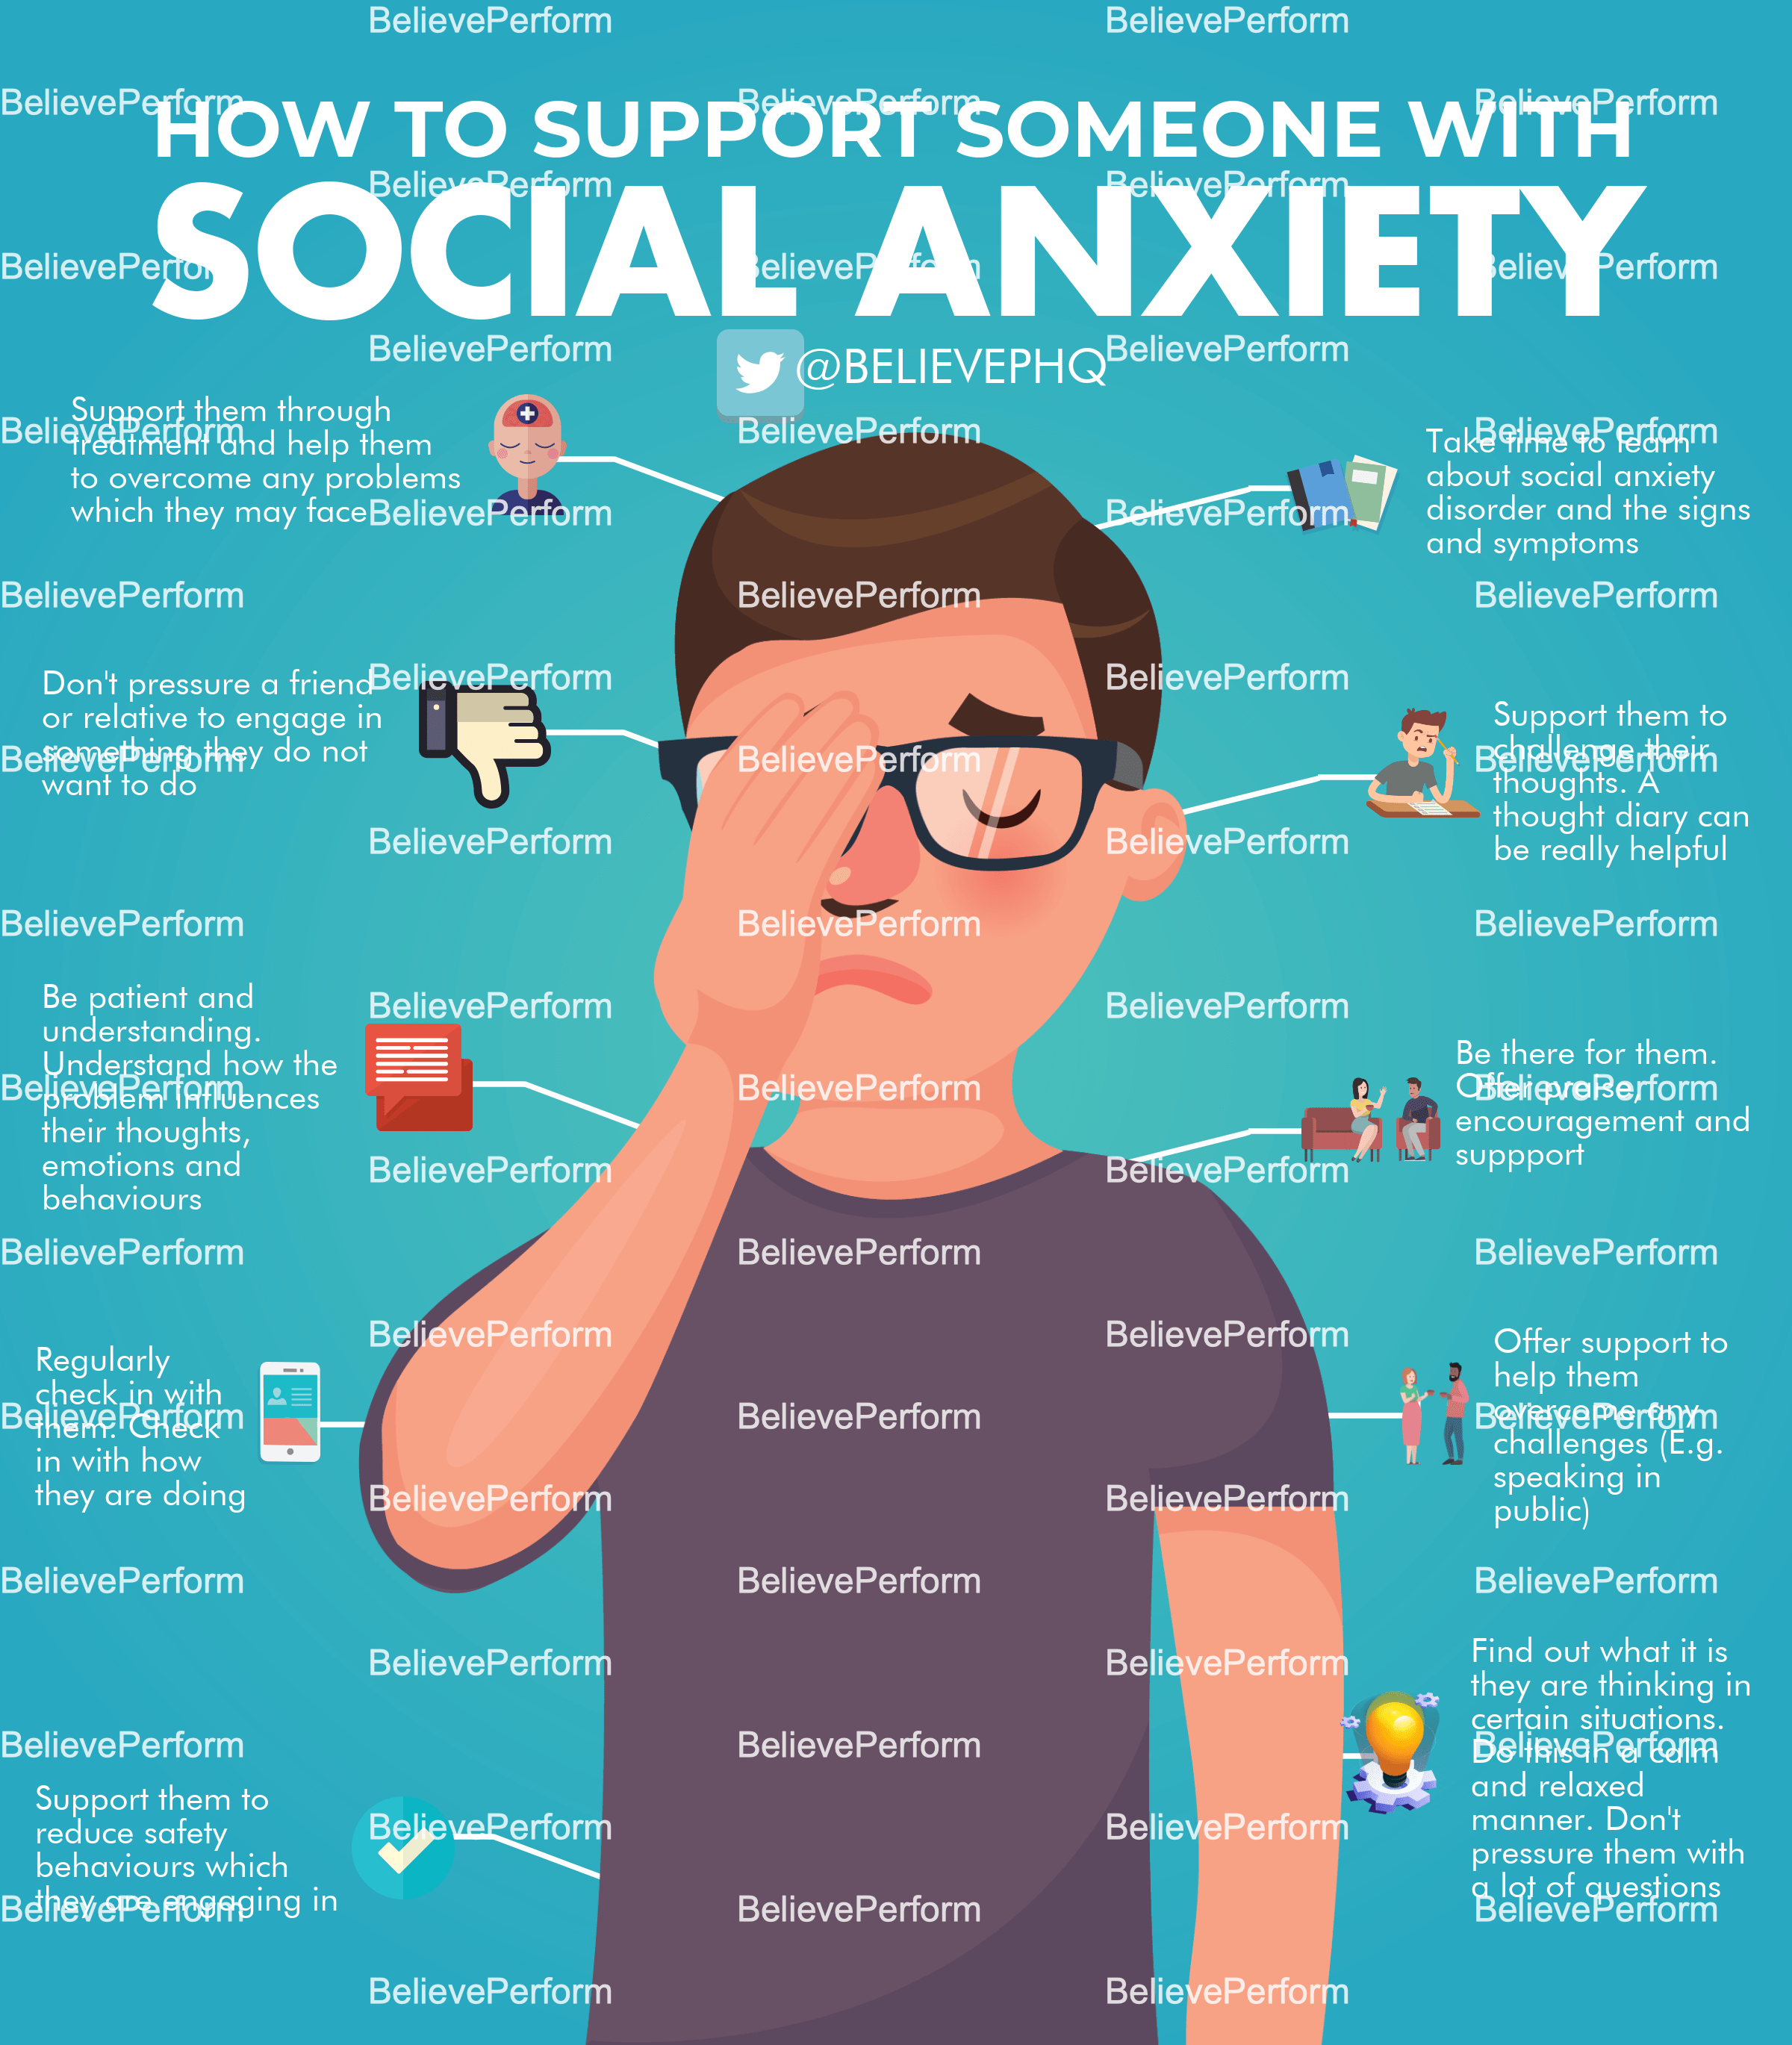 How To Support Someone With Social Anxiety